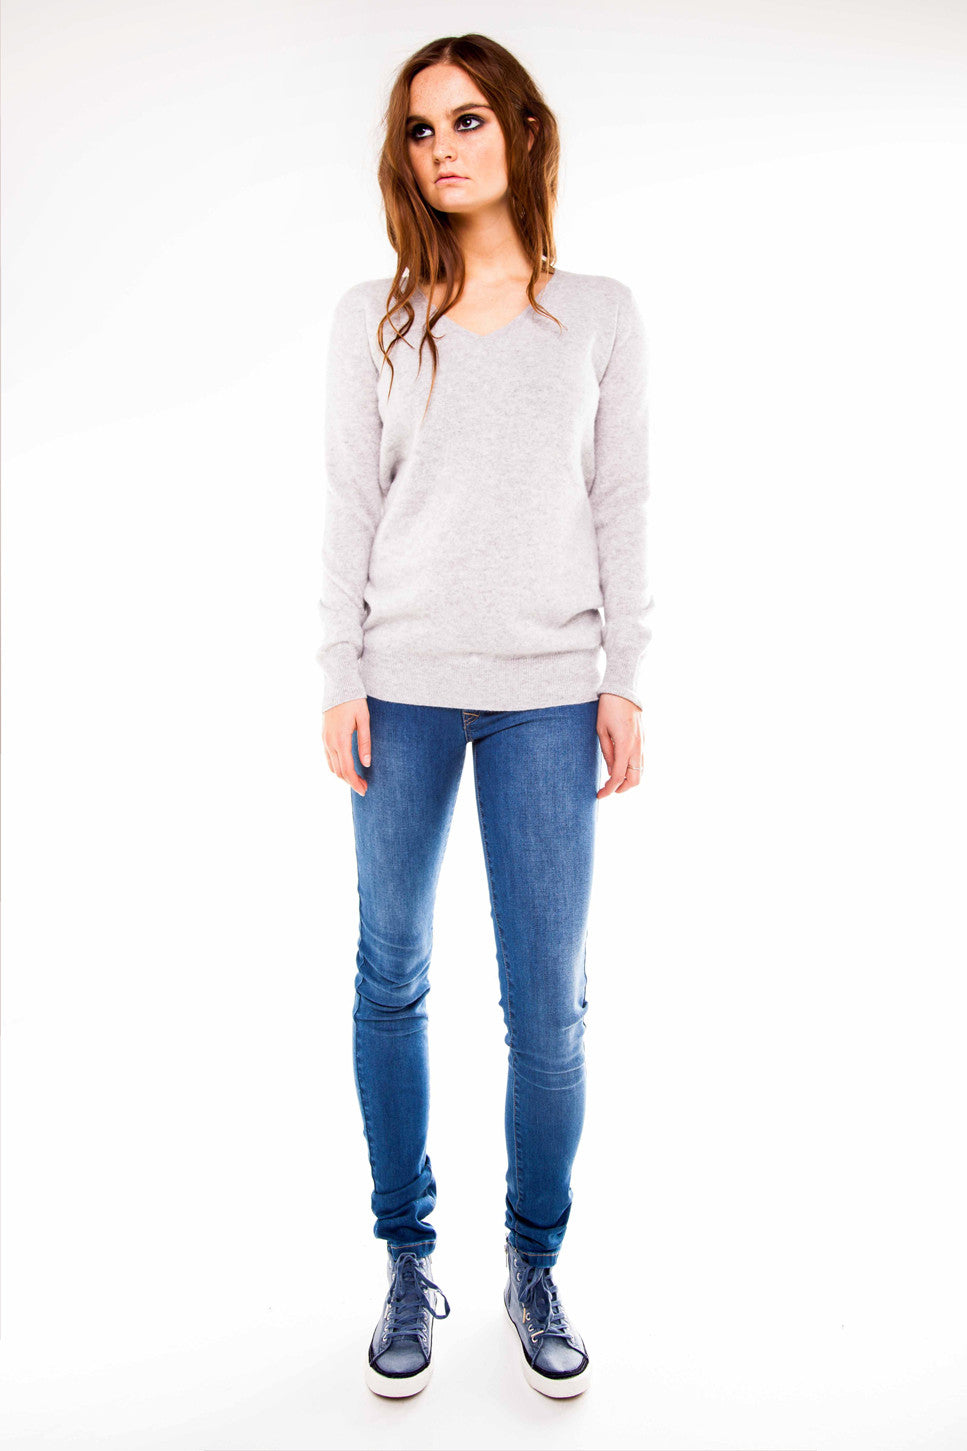 The Cashmere V Neck Knit